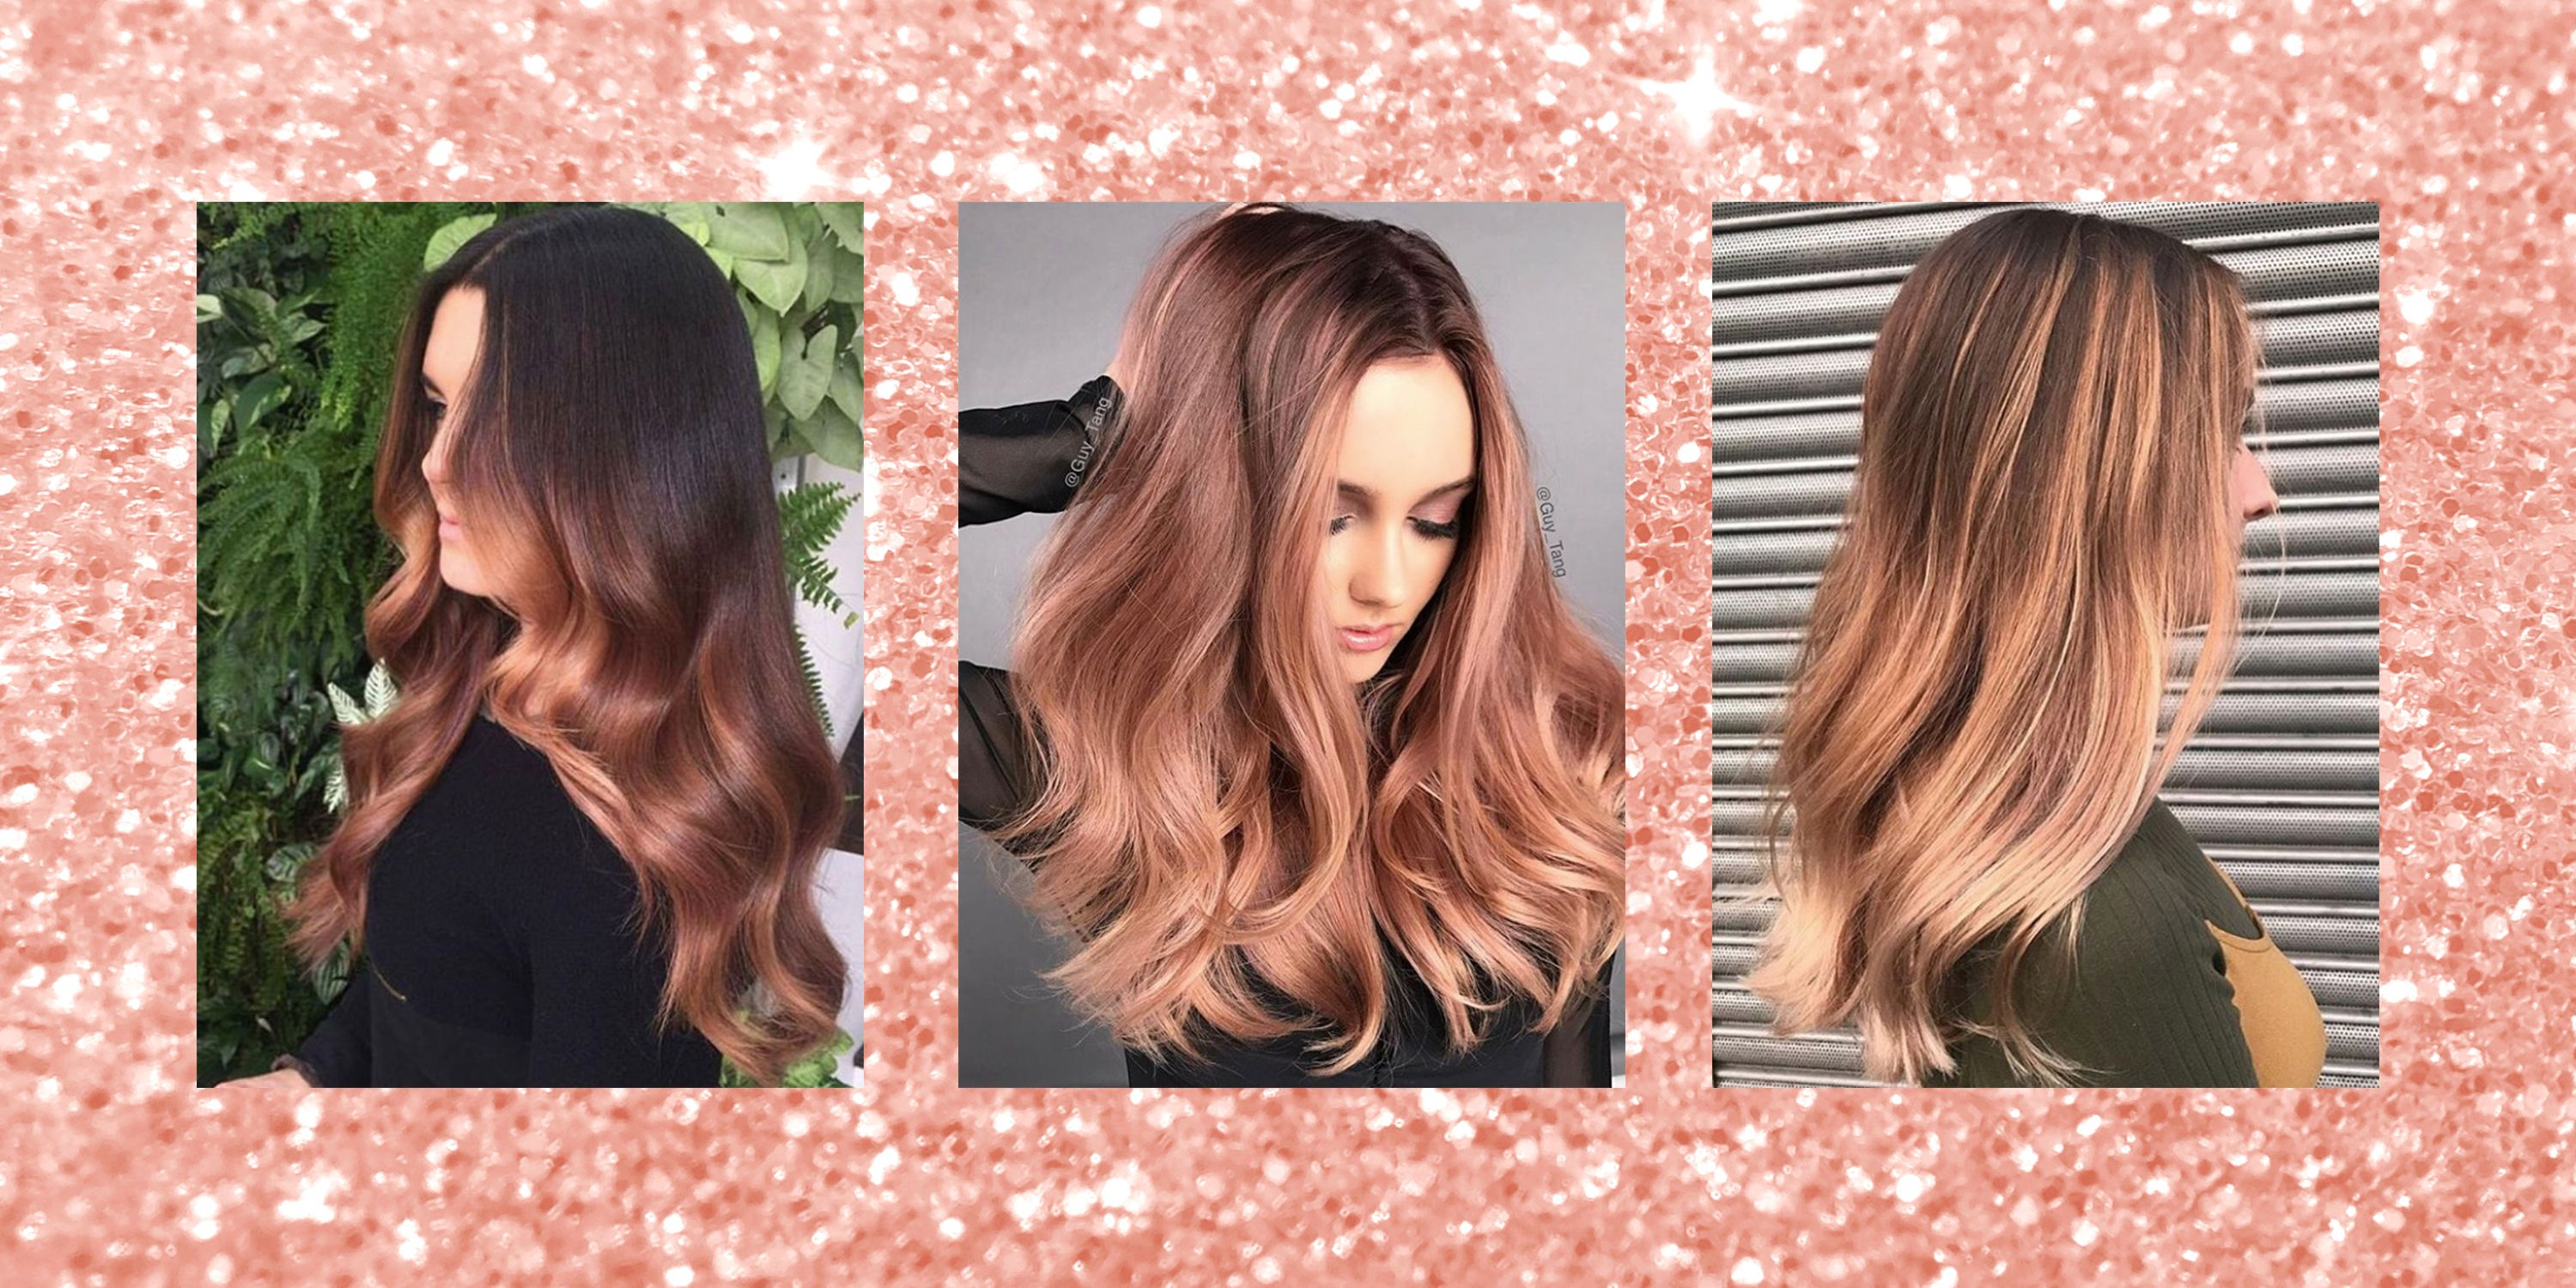 Rose Gold Hair - Hairstyles, Hair Colour Ideas and Inspiration